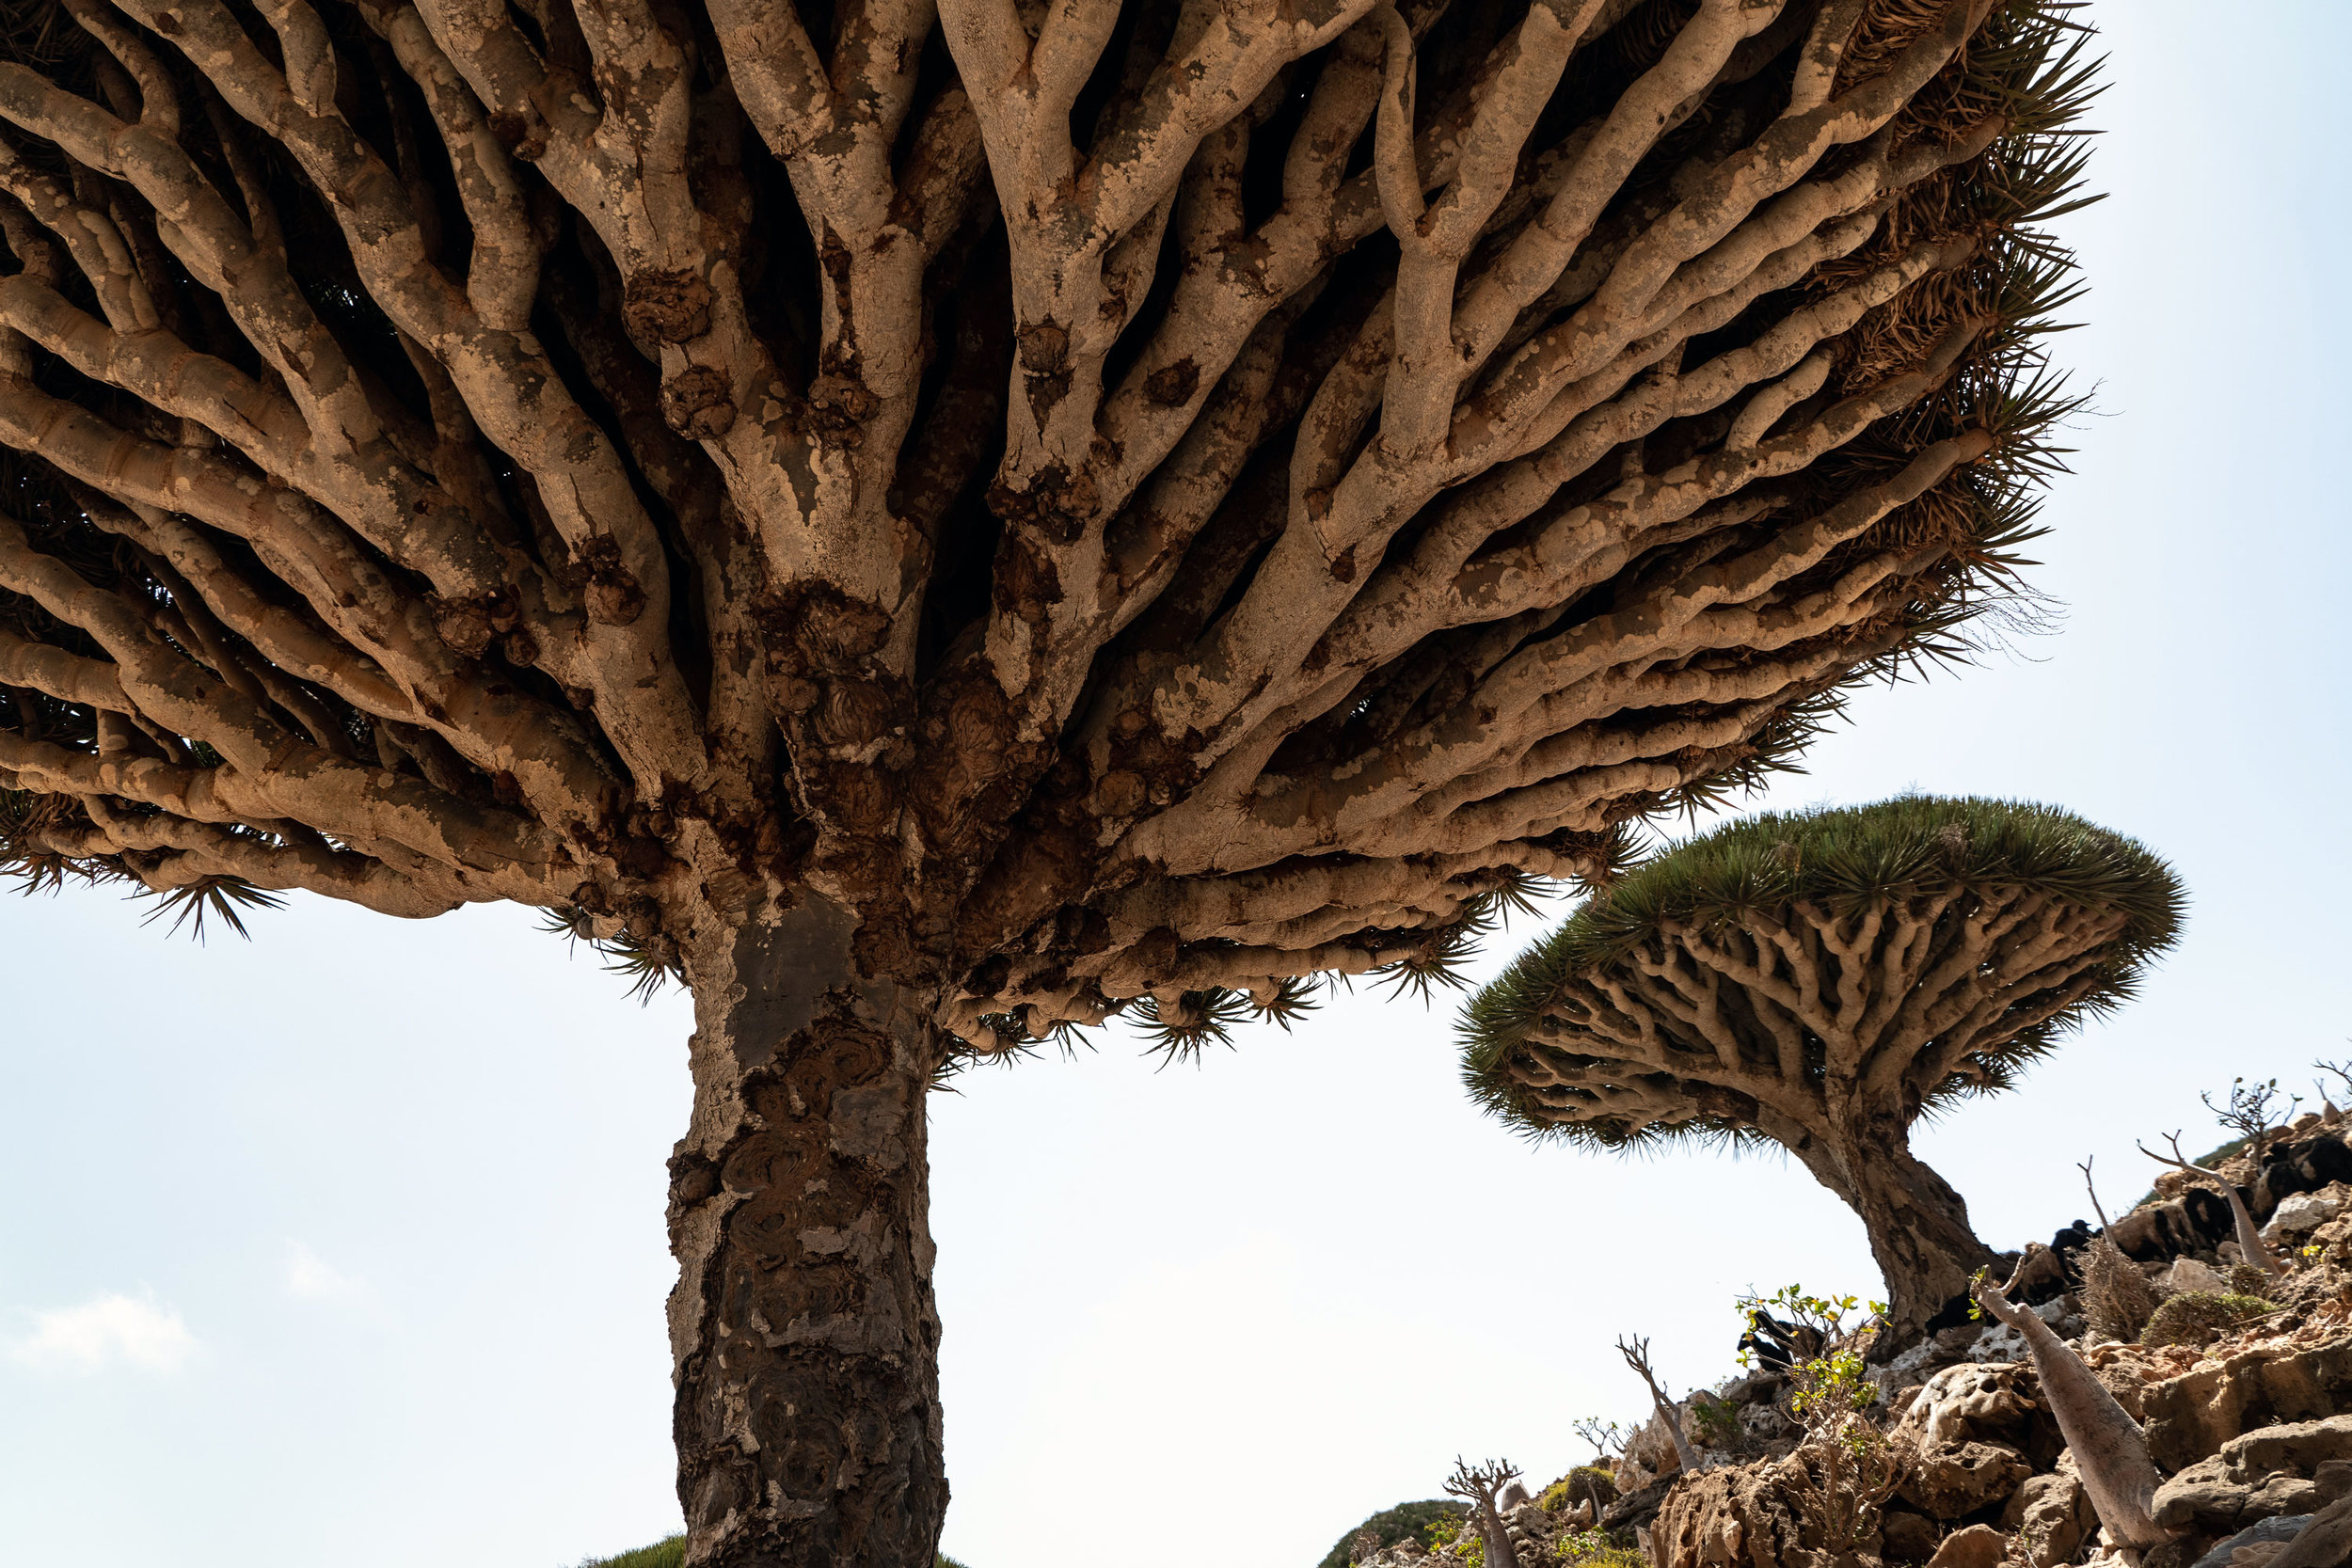 Socotra's famous Dragon's Blood Trees in Homhil, Socotra, Yemen.